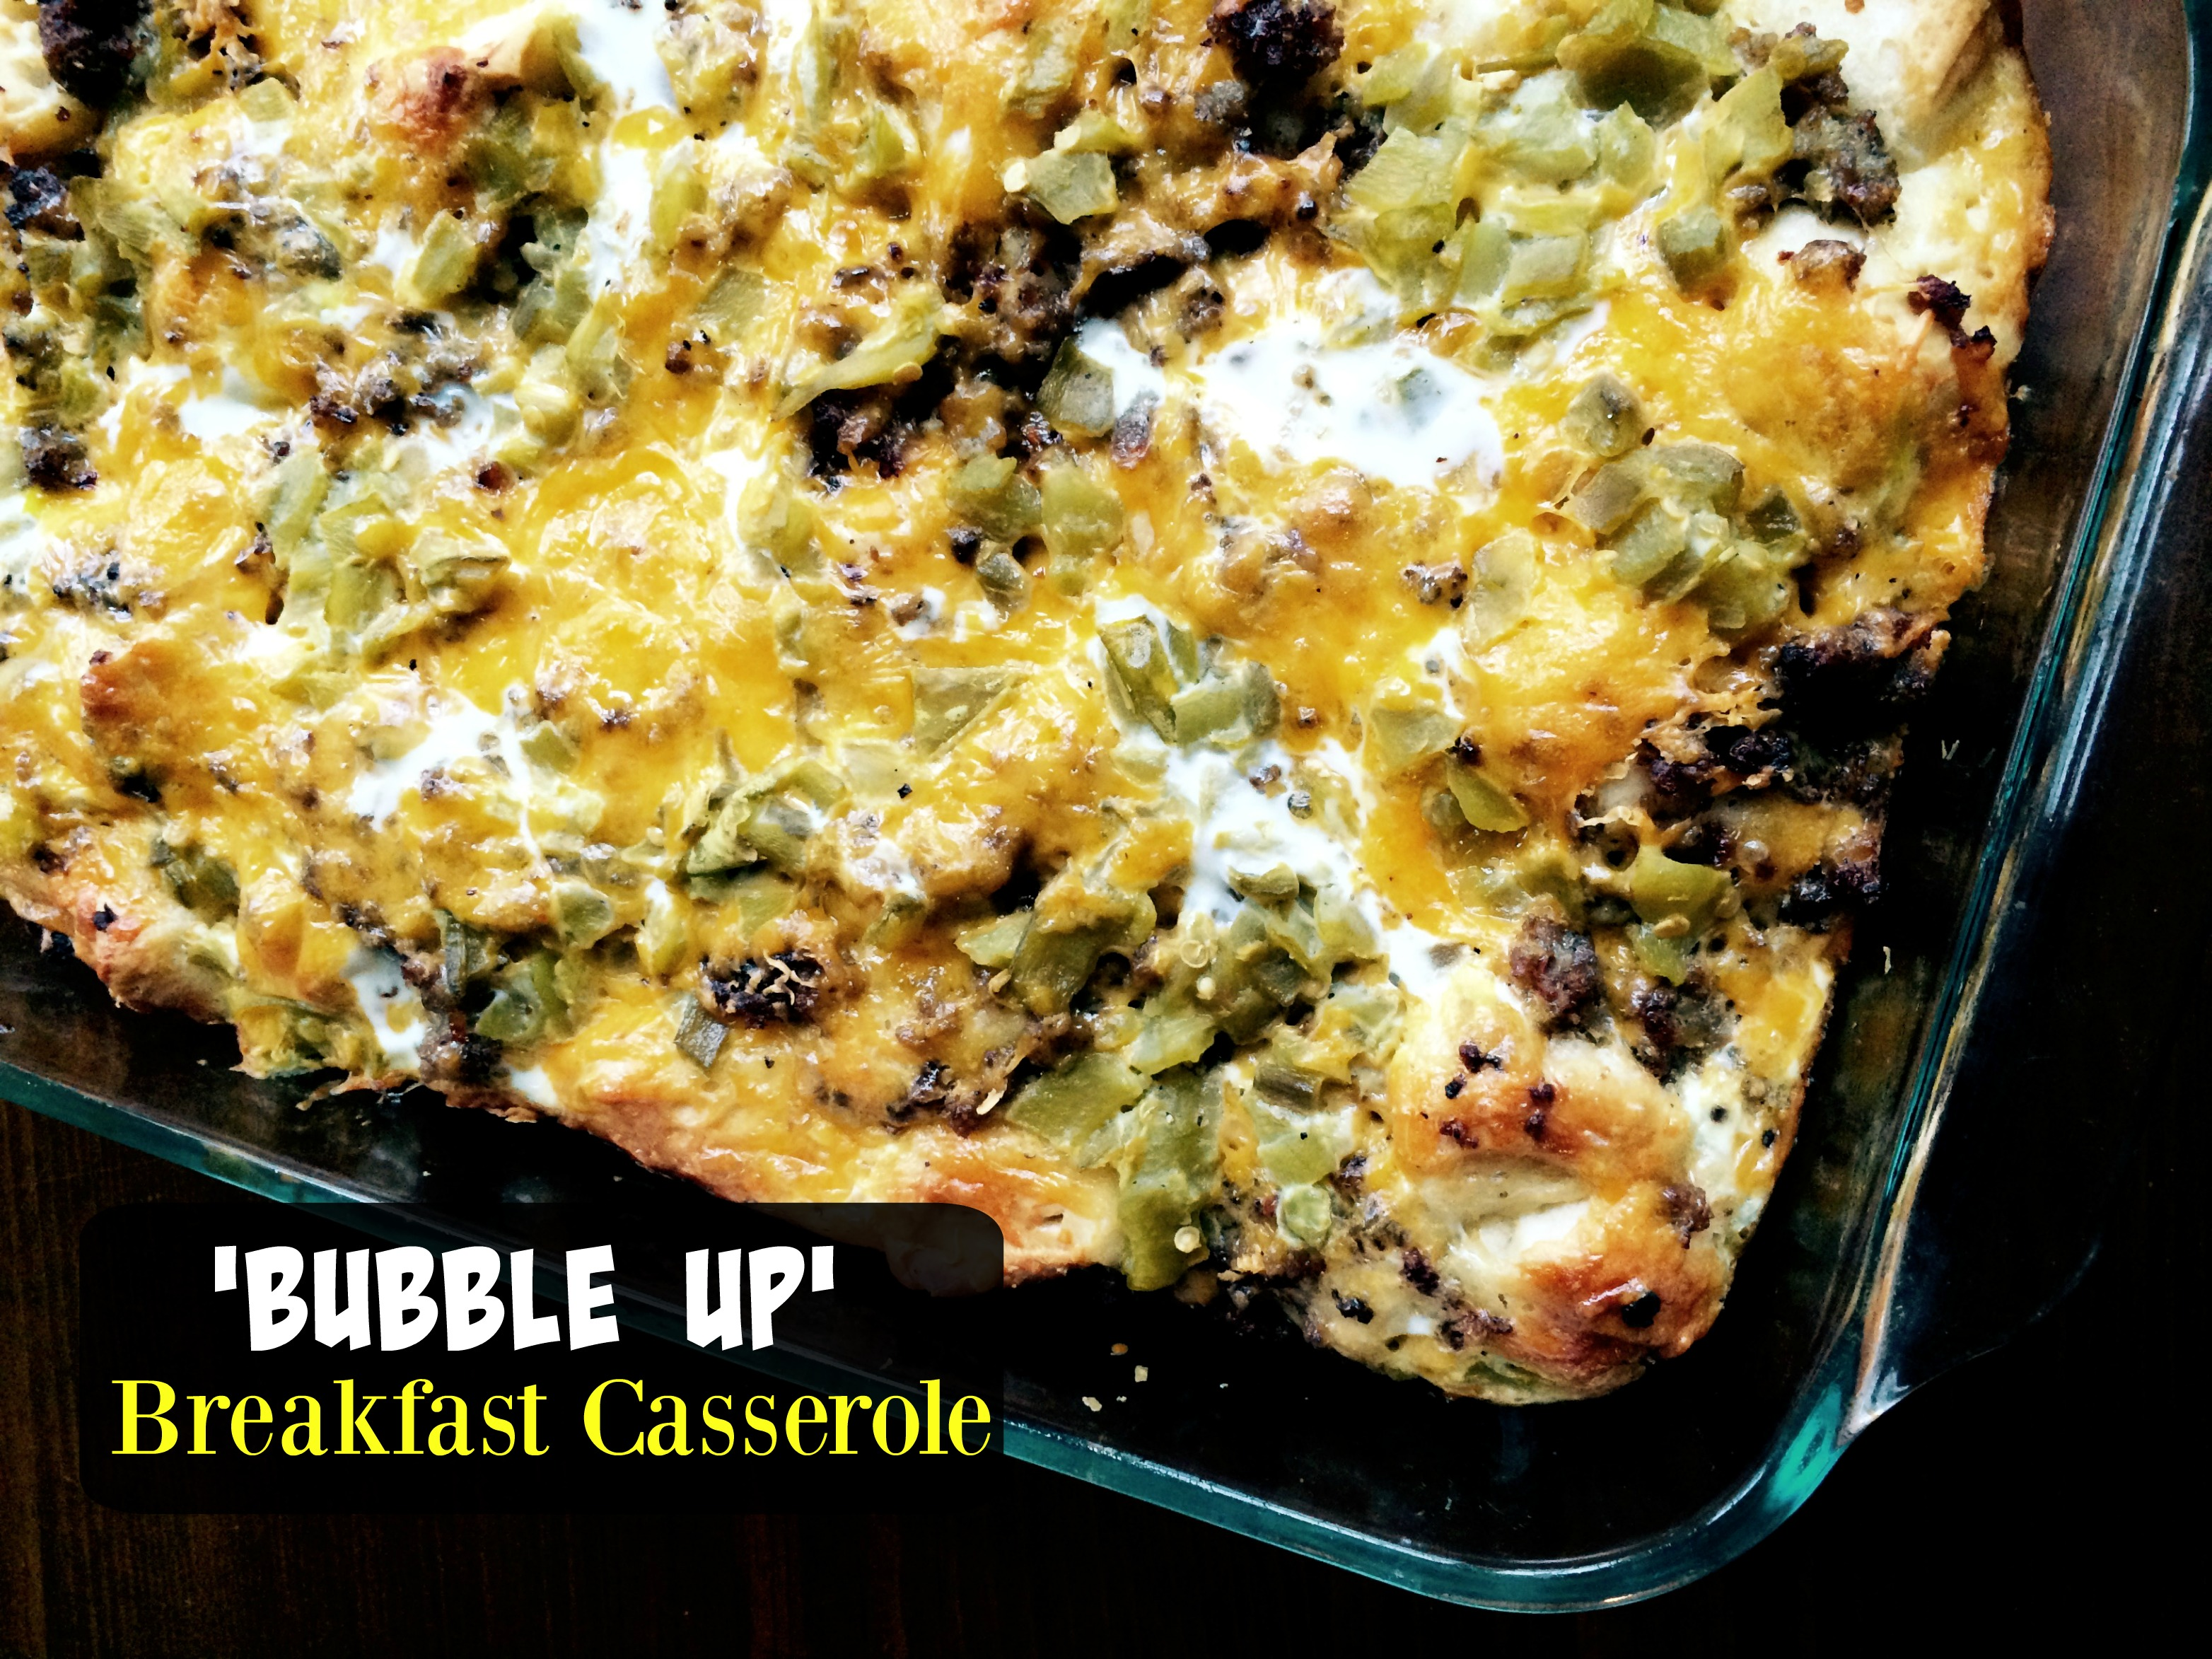 'Bubble Up' Breakfast Casserole